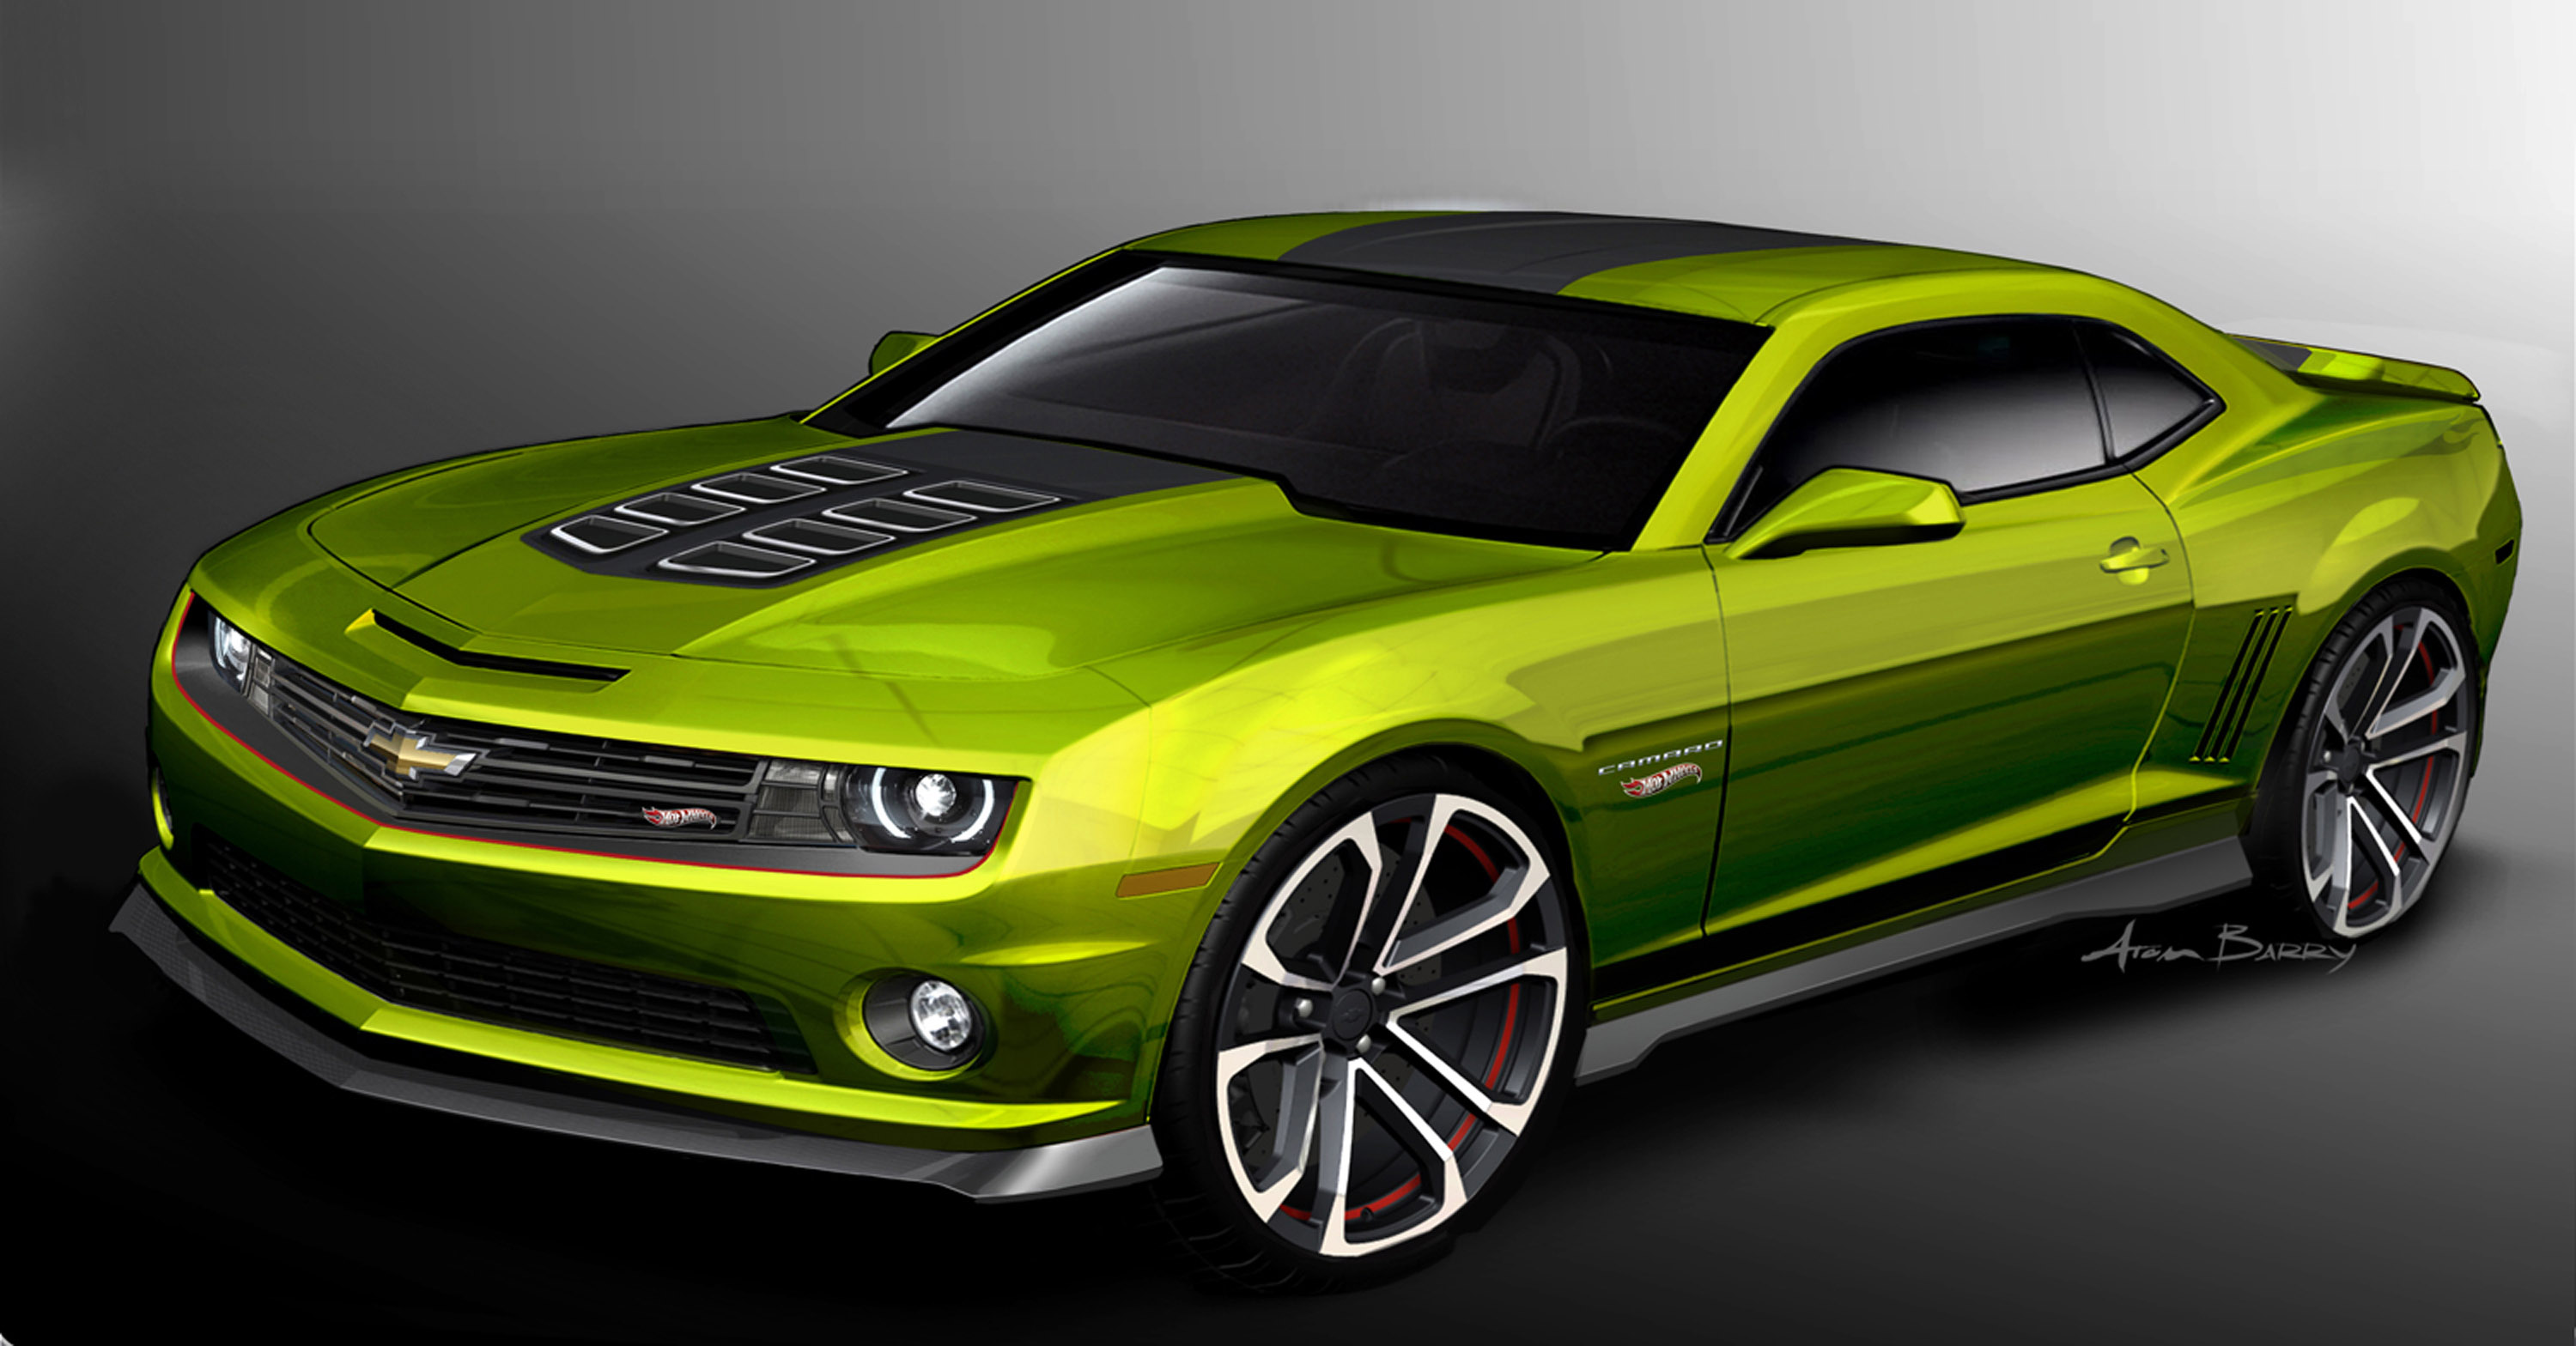 Chevrolet Camaro Hot Wheels Concept and Chevrolet Spark  a Green